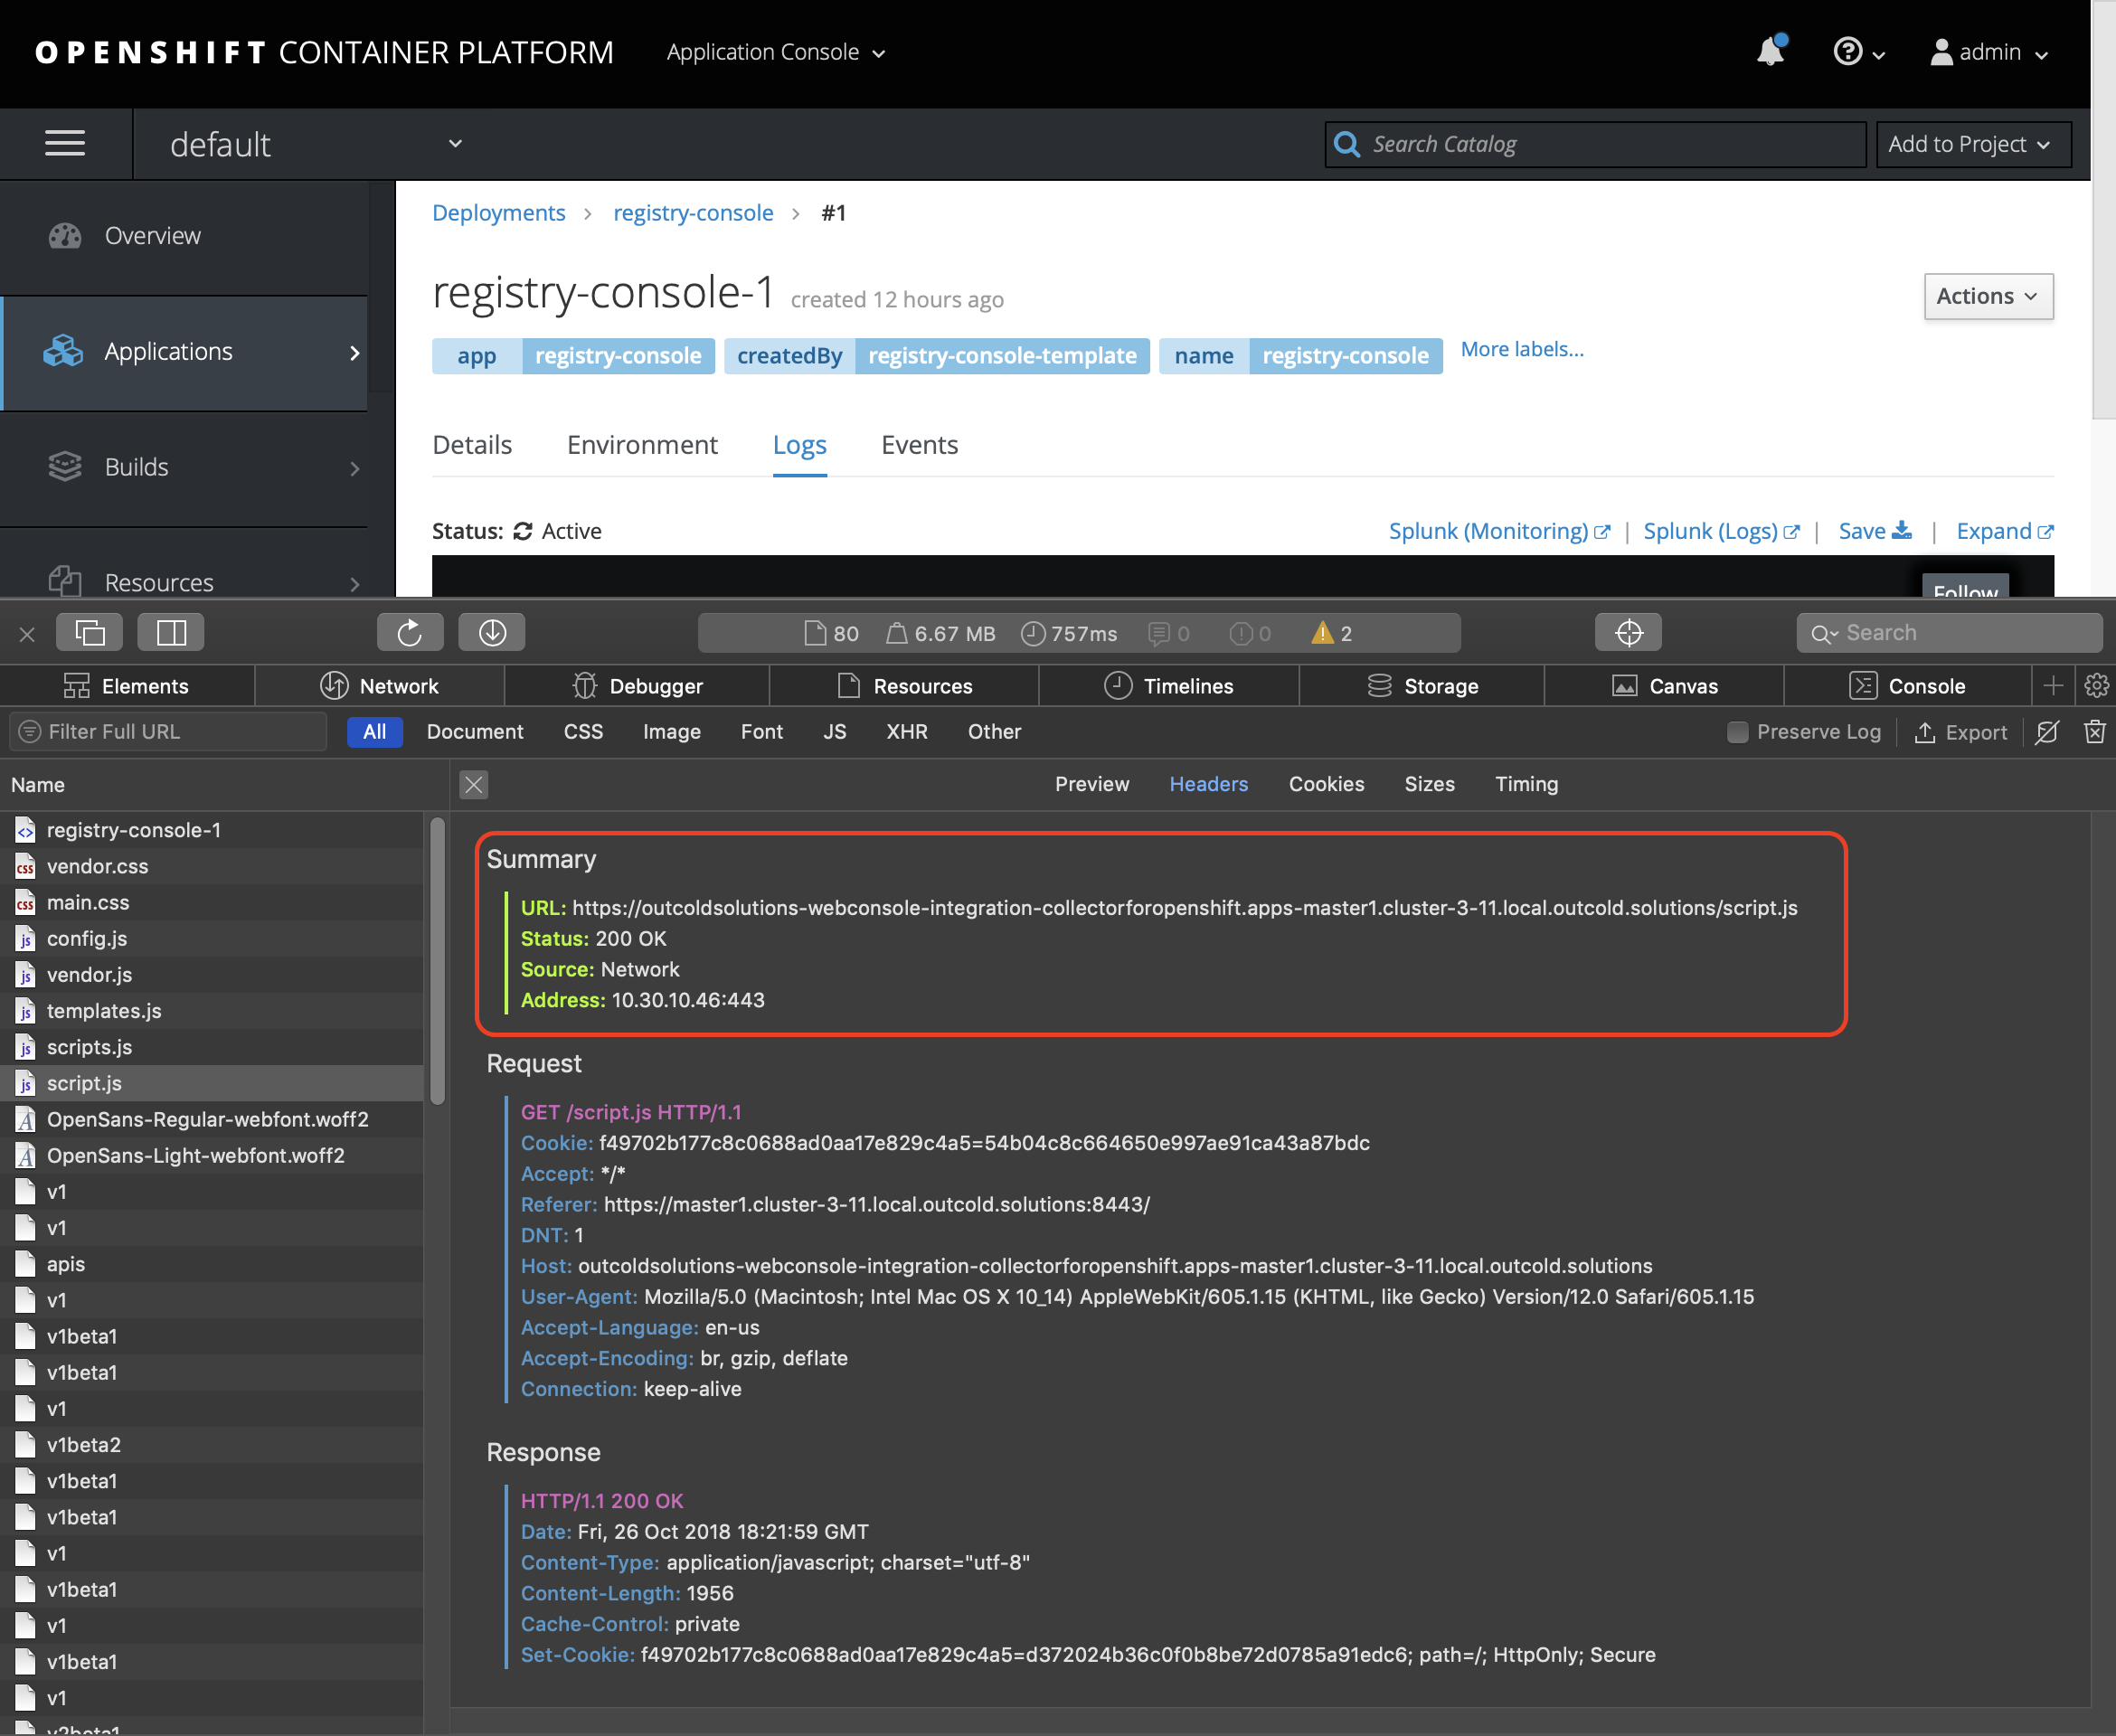 OpenShift Web Console with Development Console